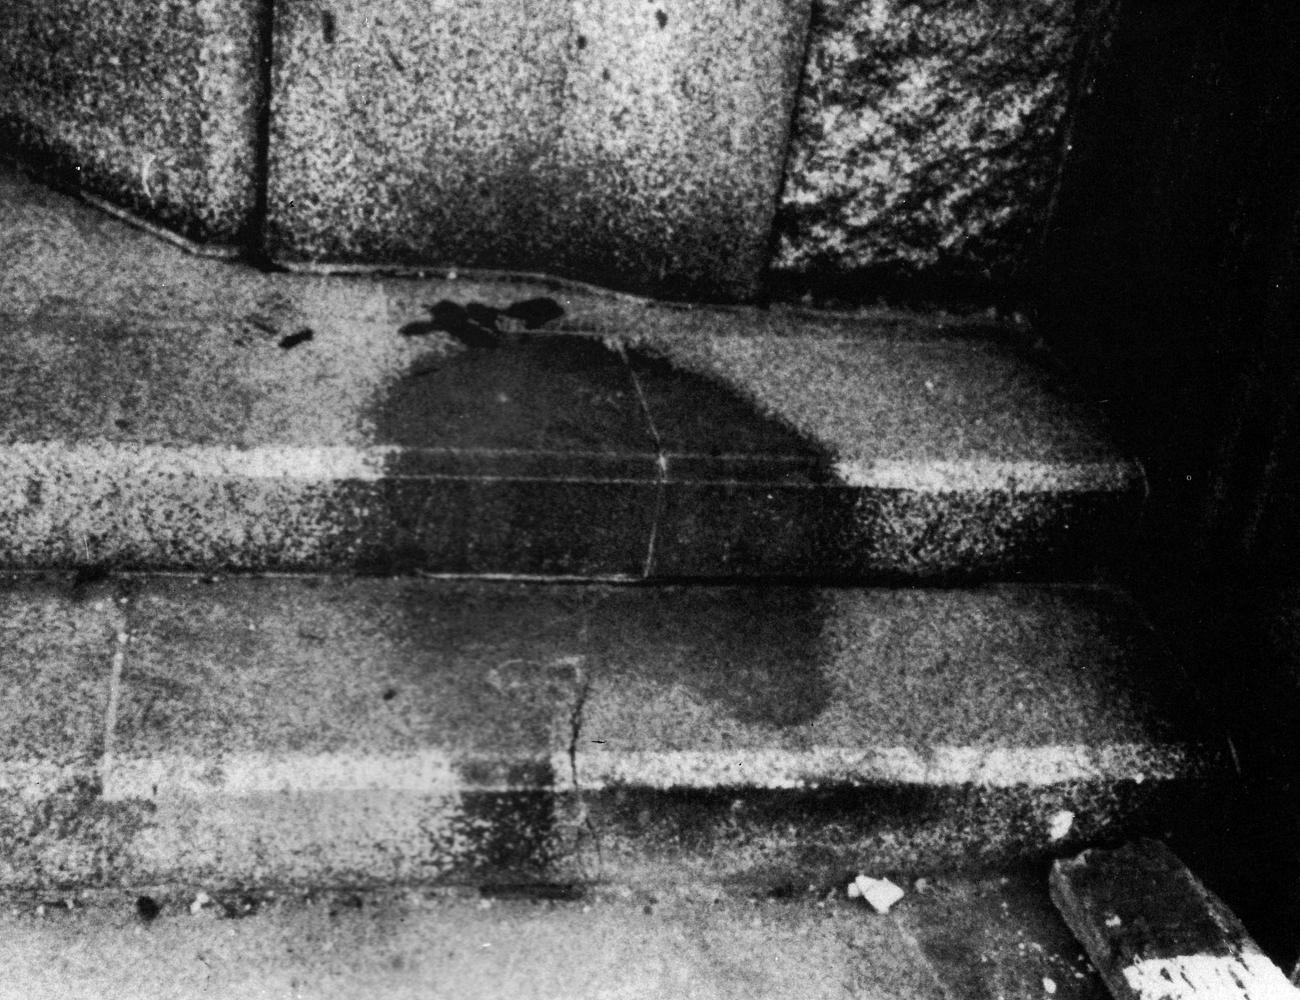 Shadow of a human on stairs. Hiroshima, August 6, 1945